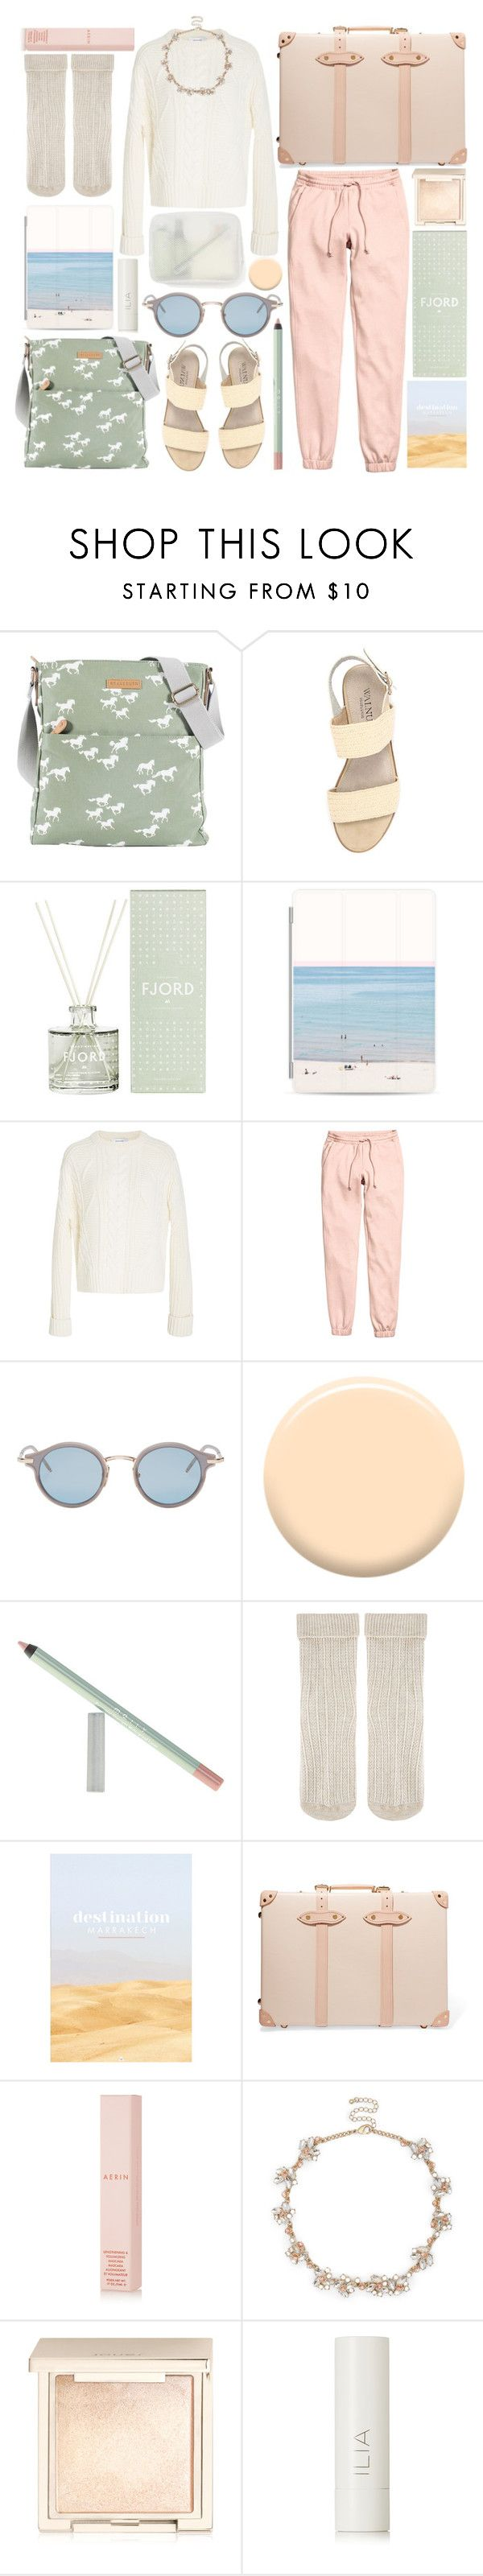 """""""don't stop travel"""" by foundlostme ❤ liked on Polyvore featuring Brakeburn, Walnut Melbourne, Skandinavisk, Casetify, Carven, Muji, H&M, Thom Browne, Lauren B. Beauty and Mally"""